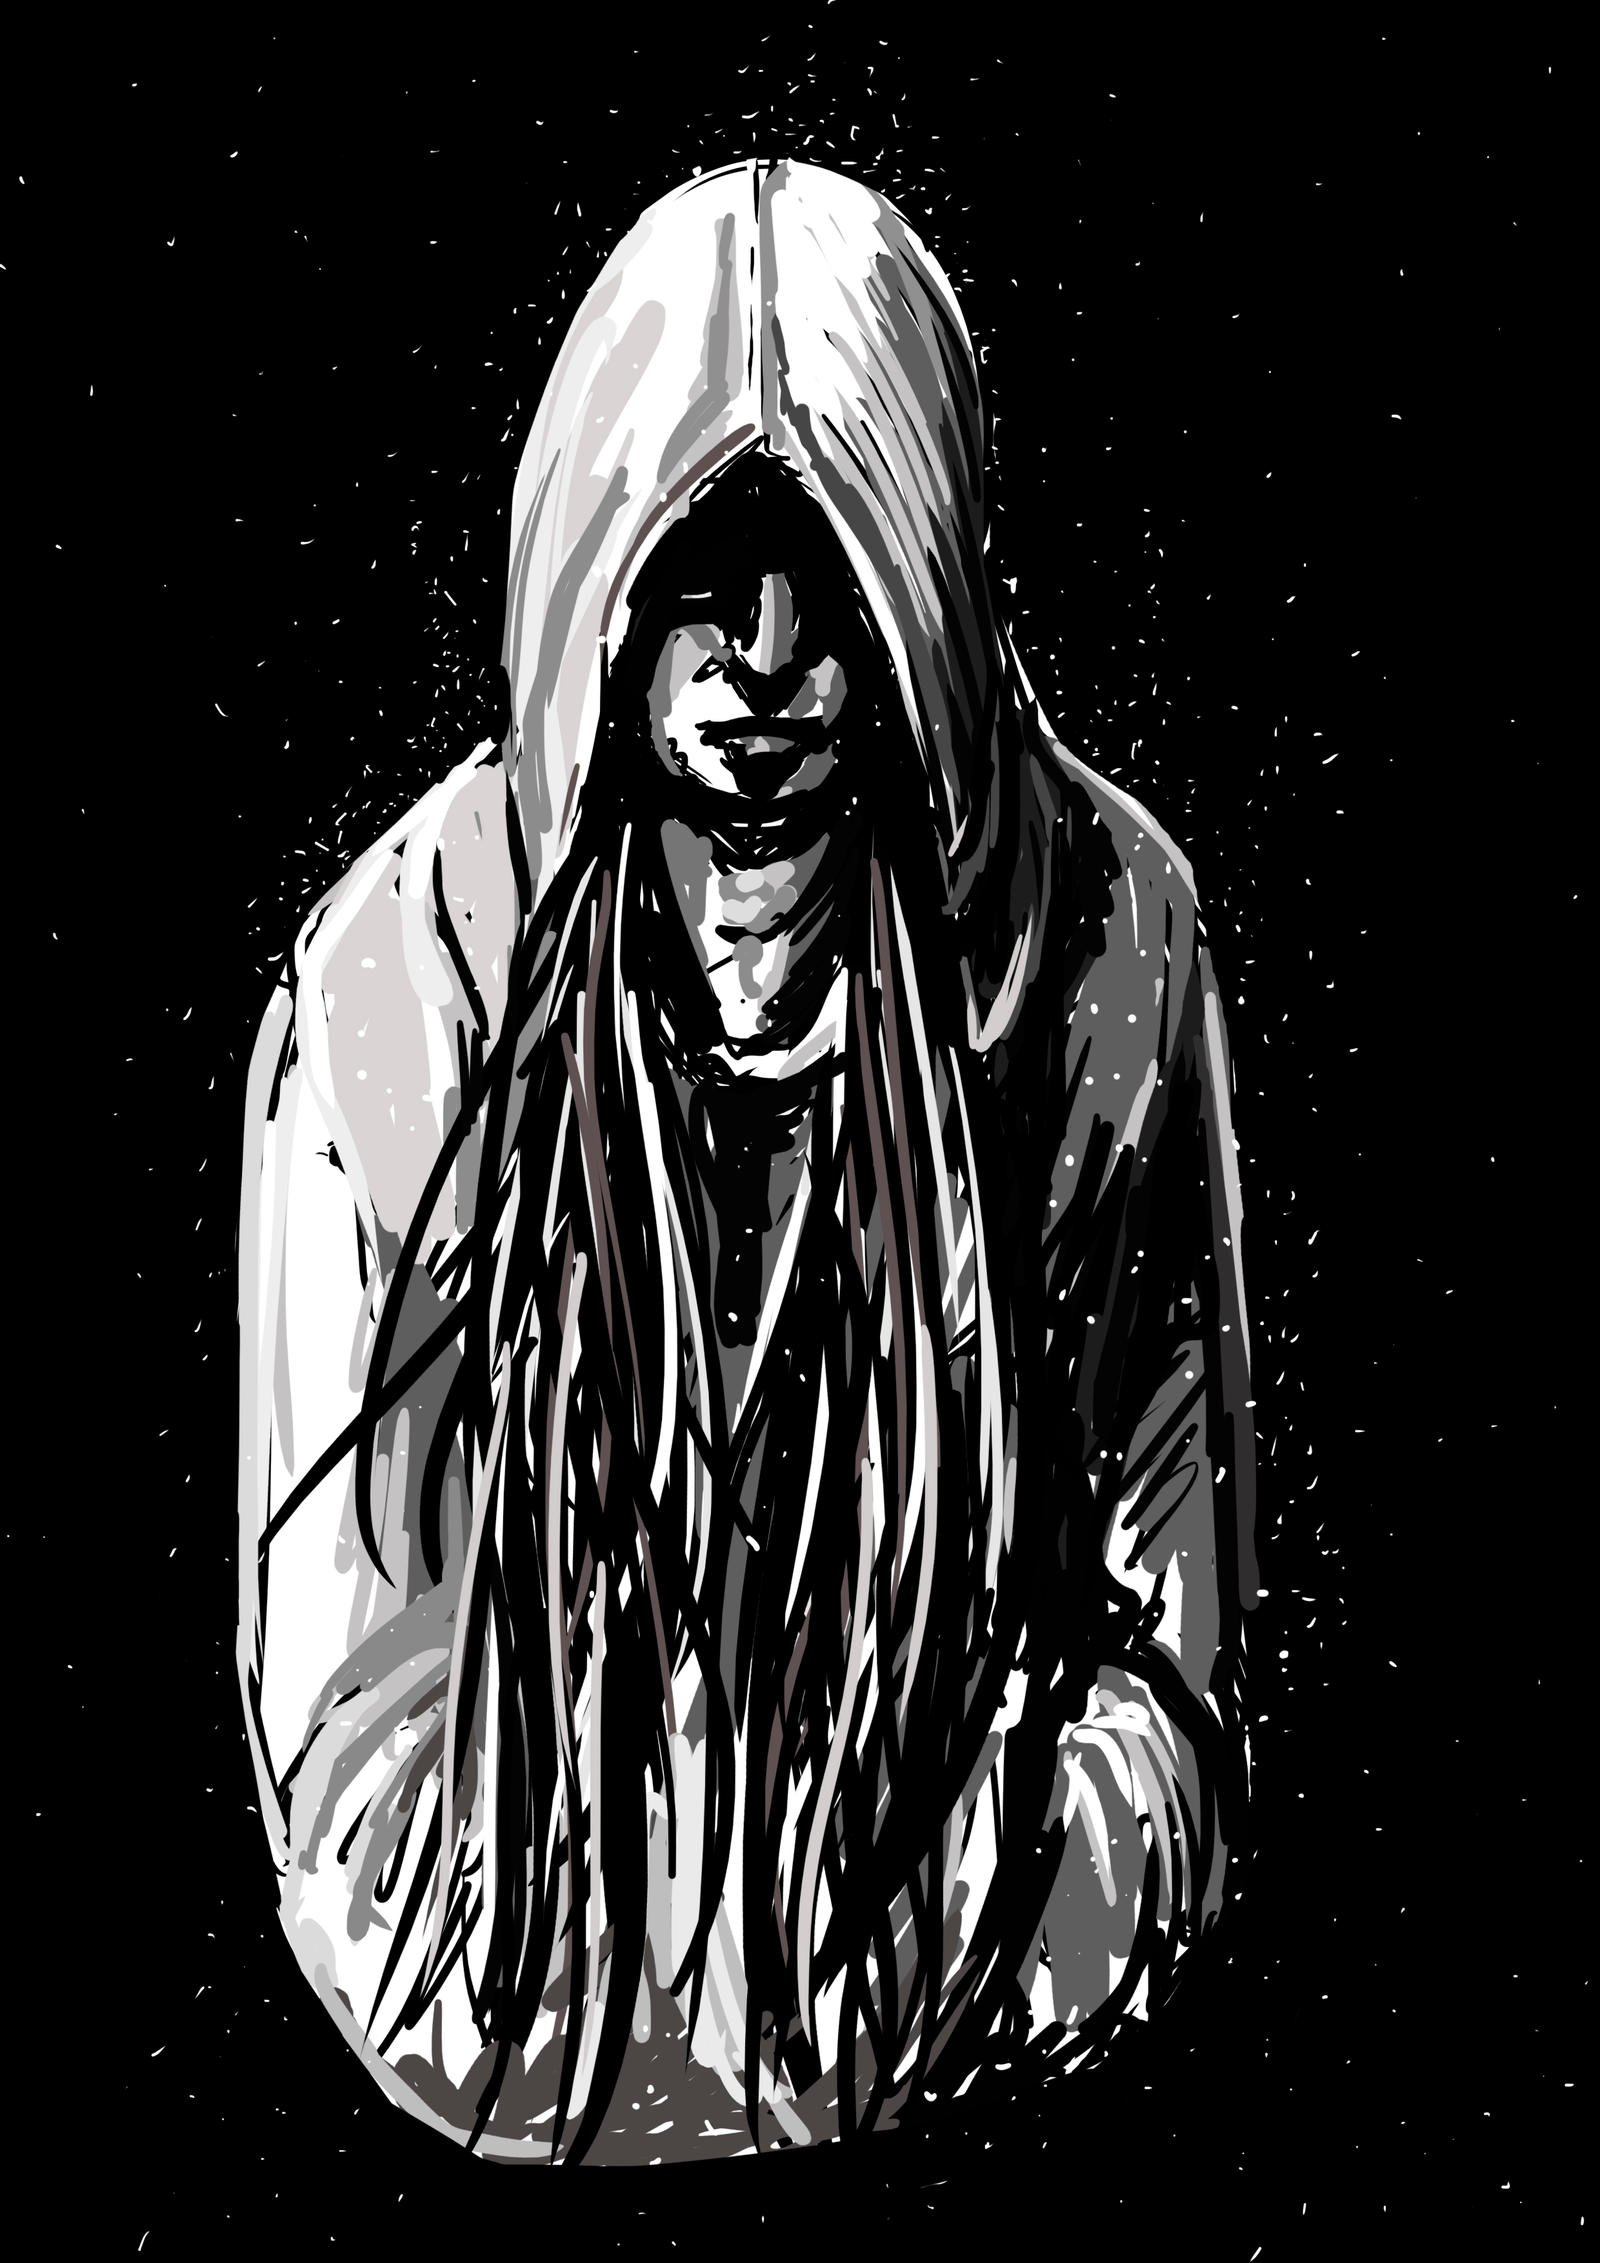 It's just a photo of Impertinent Guy In Hoodie Drawing